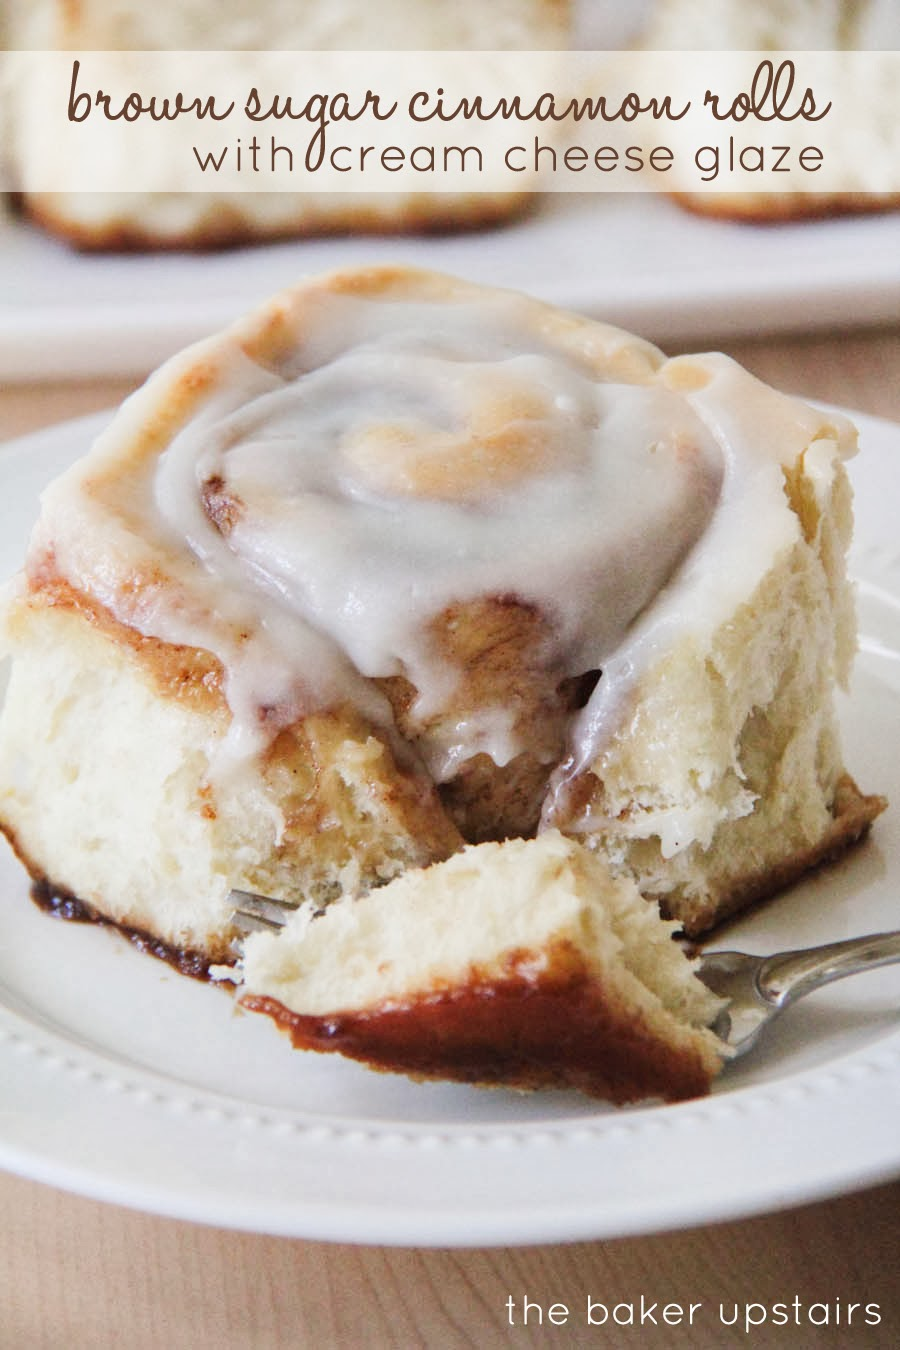 the baker upstairs: brown sugar cinnamon rolls with cream cheese glaze